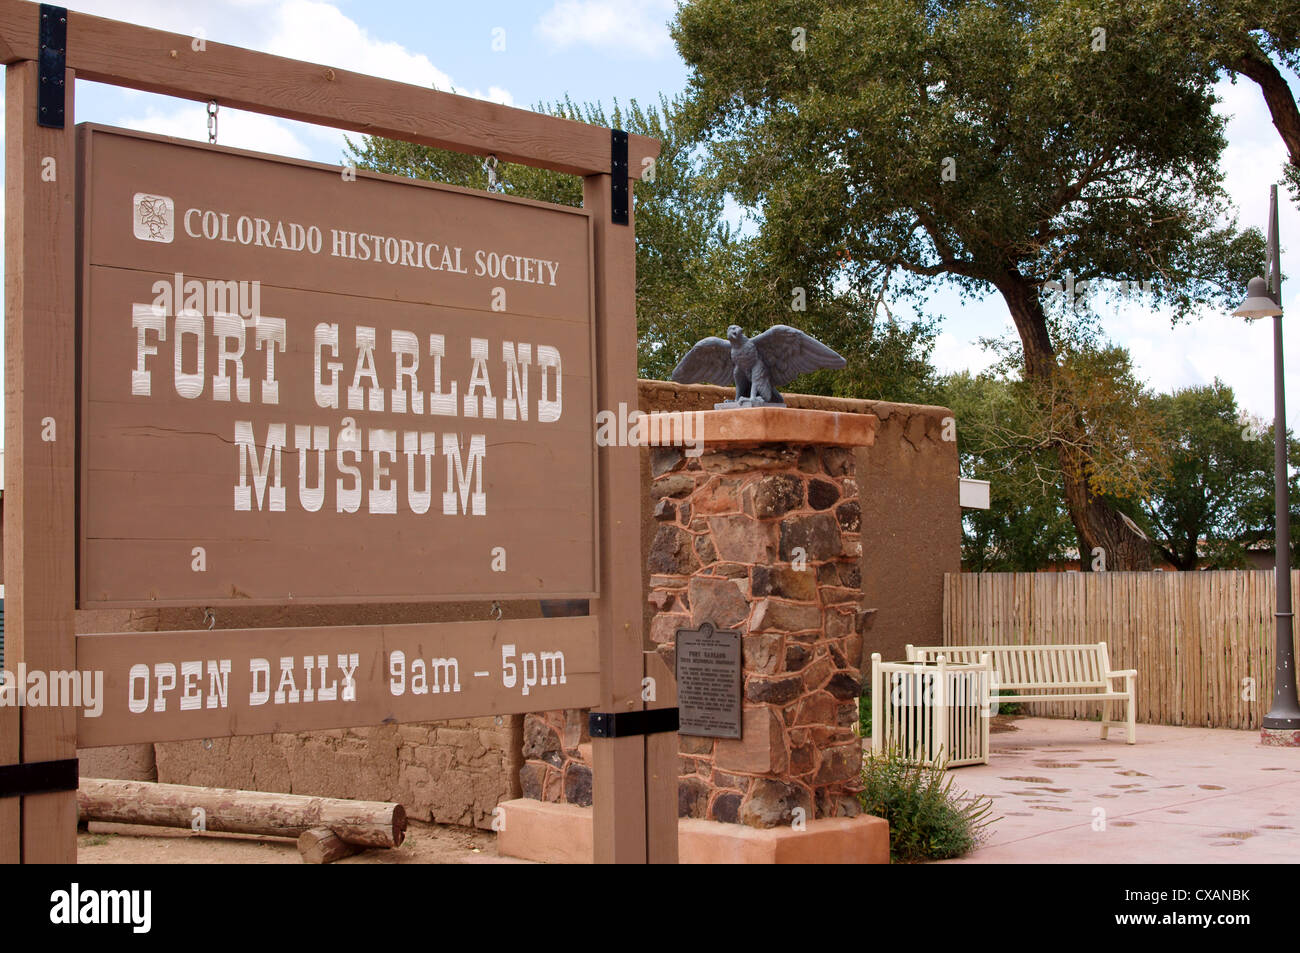 fort garland museum historical society colorado co usa soldiers protect settlers san luis valley territory new - Stock Image